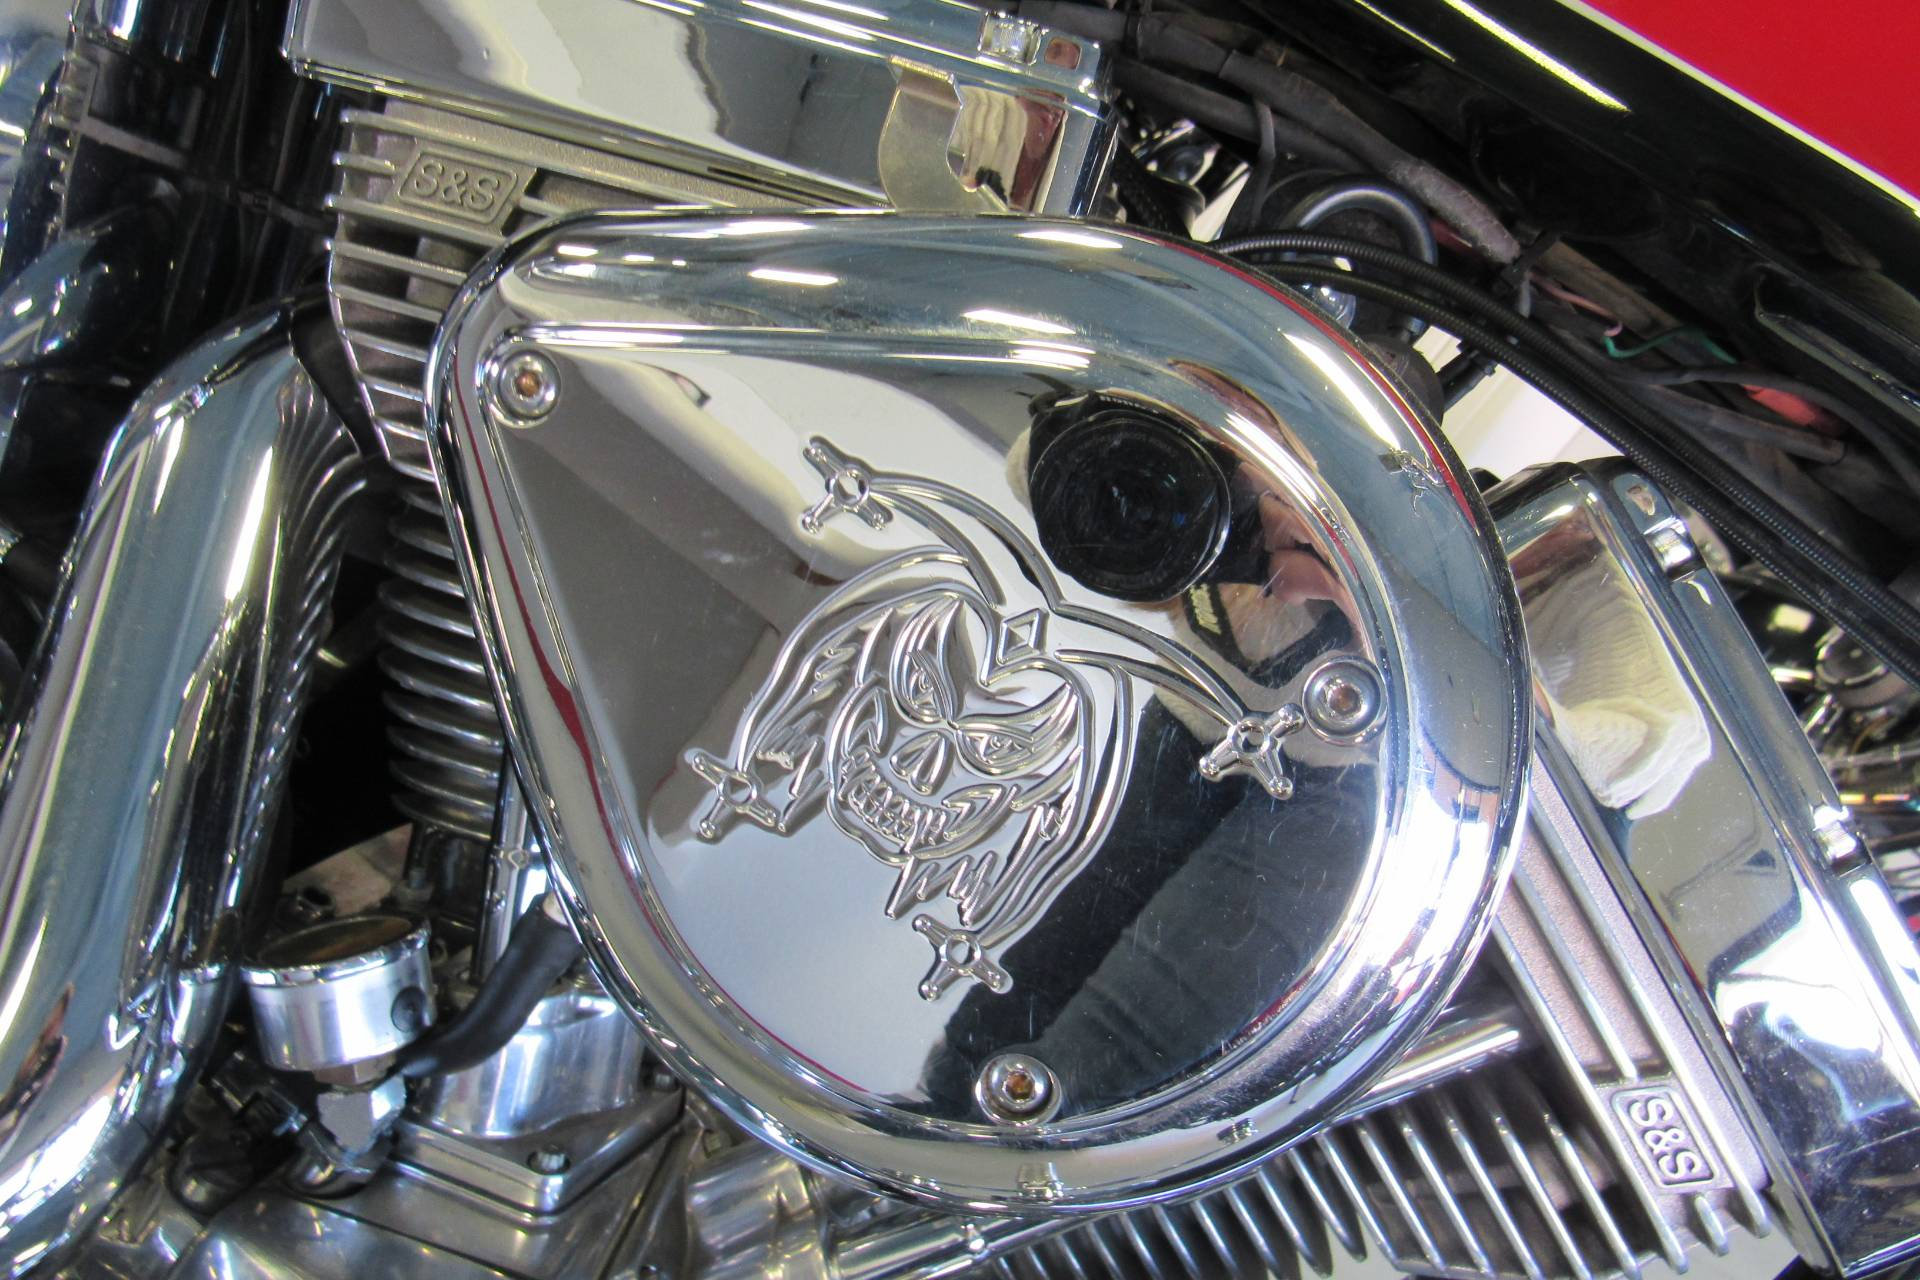 2005 Custom Custom  Springer Bobber 113 SS in Temecula, California - Photo 6